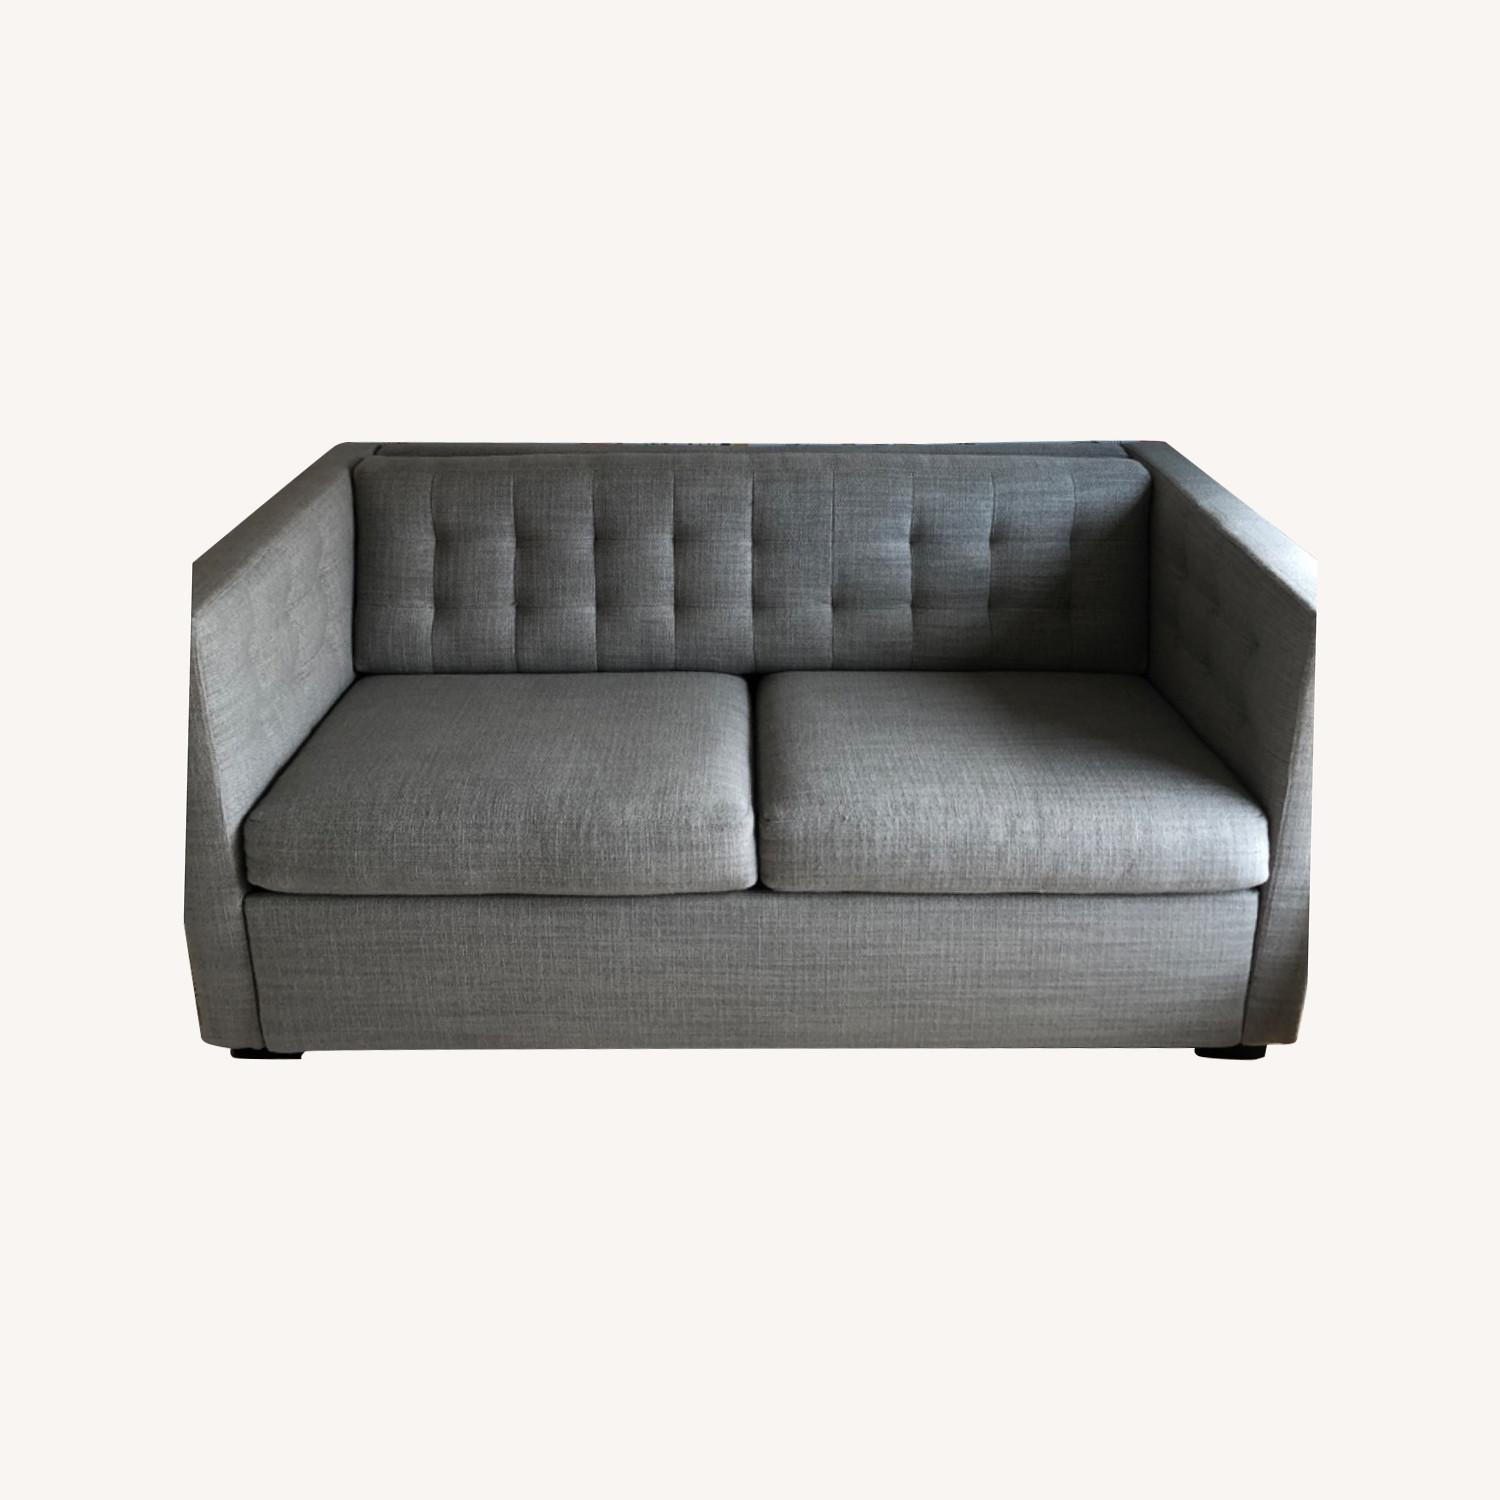 West Elm Rochester Deluxe Sleeper Sofa - image-0